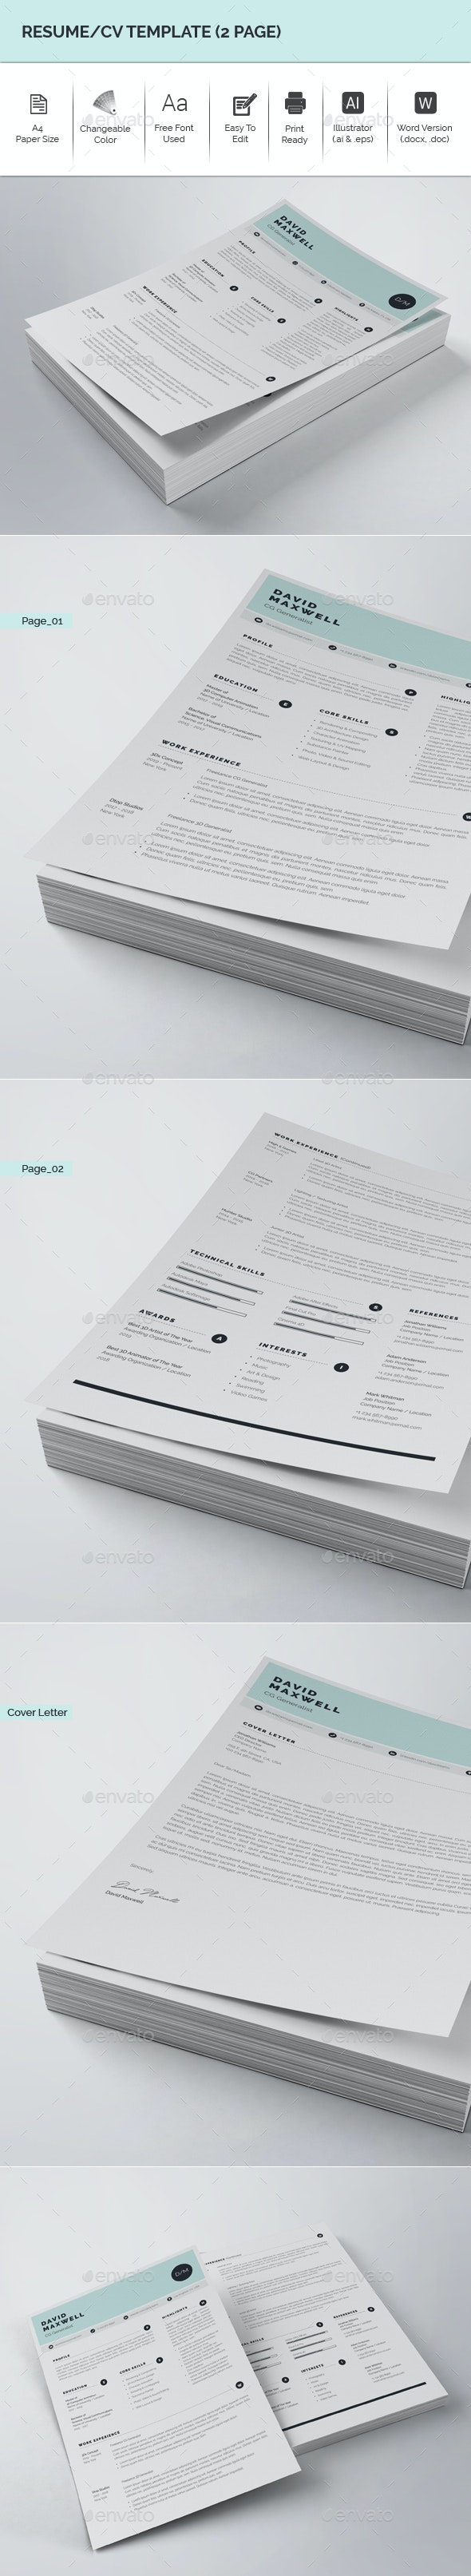 Resume/CV Template (2 Page) - Resumes Stationery